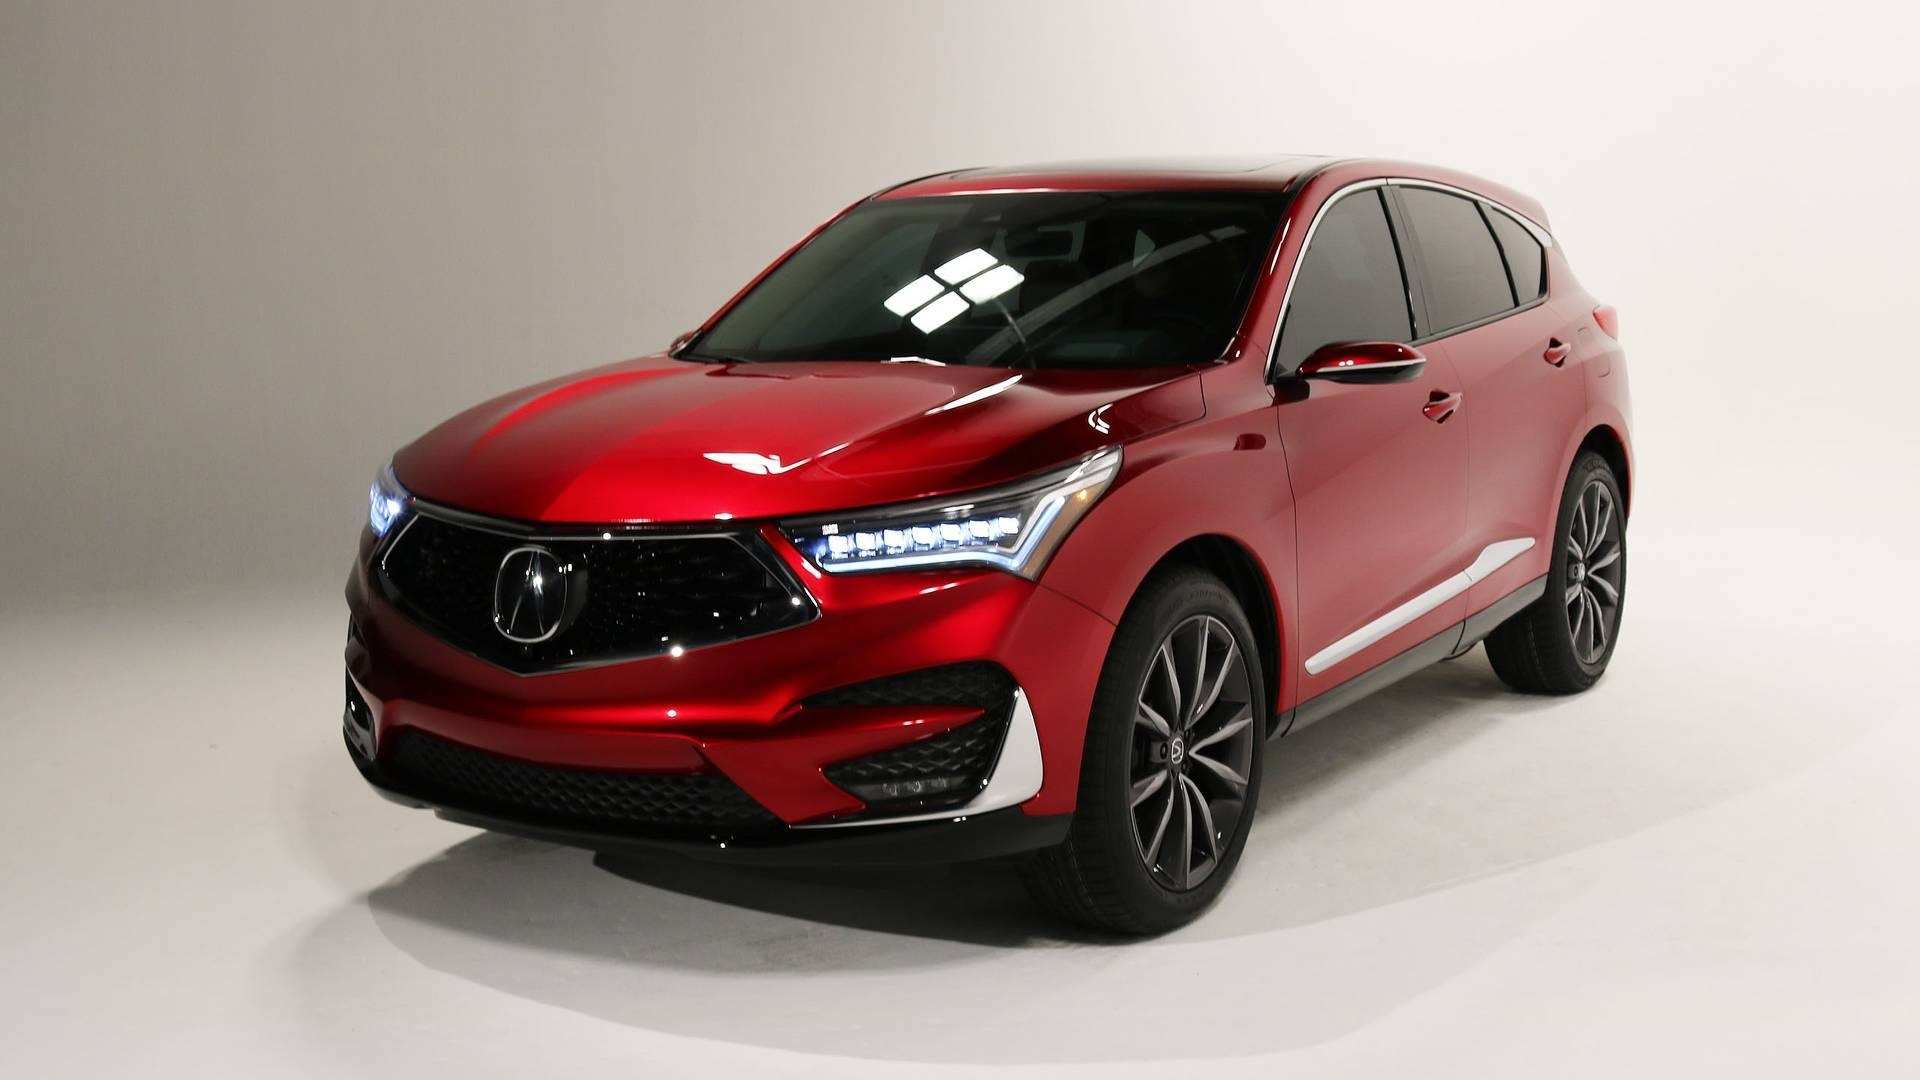 13 All New 2019 Acura Rdx Concept Speed Test for 2019 Acura Rdx Concept